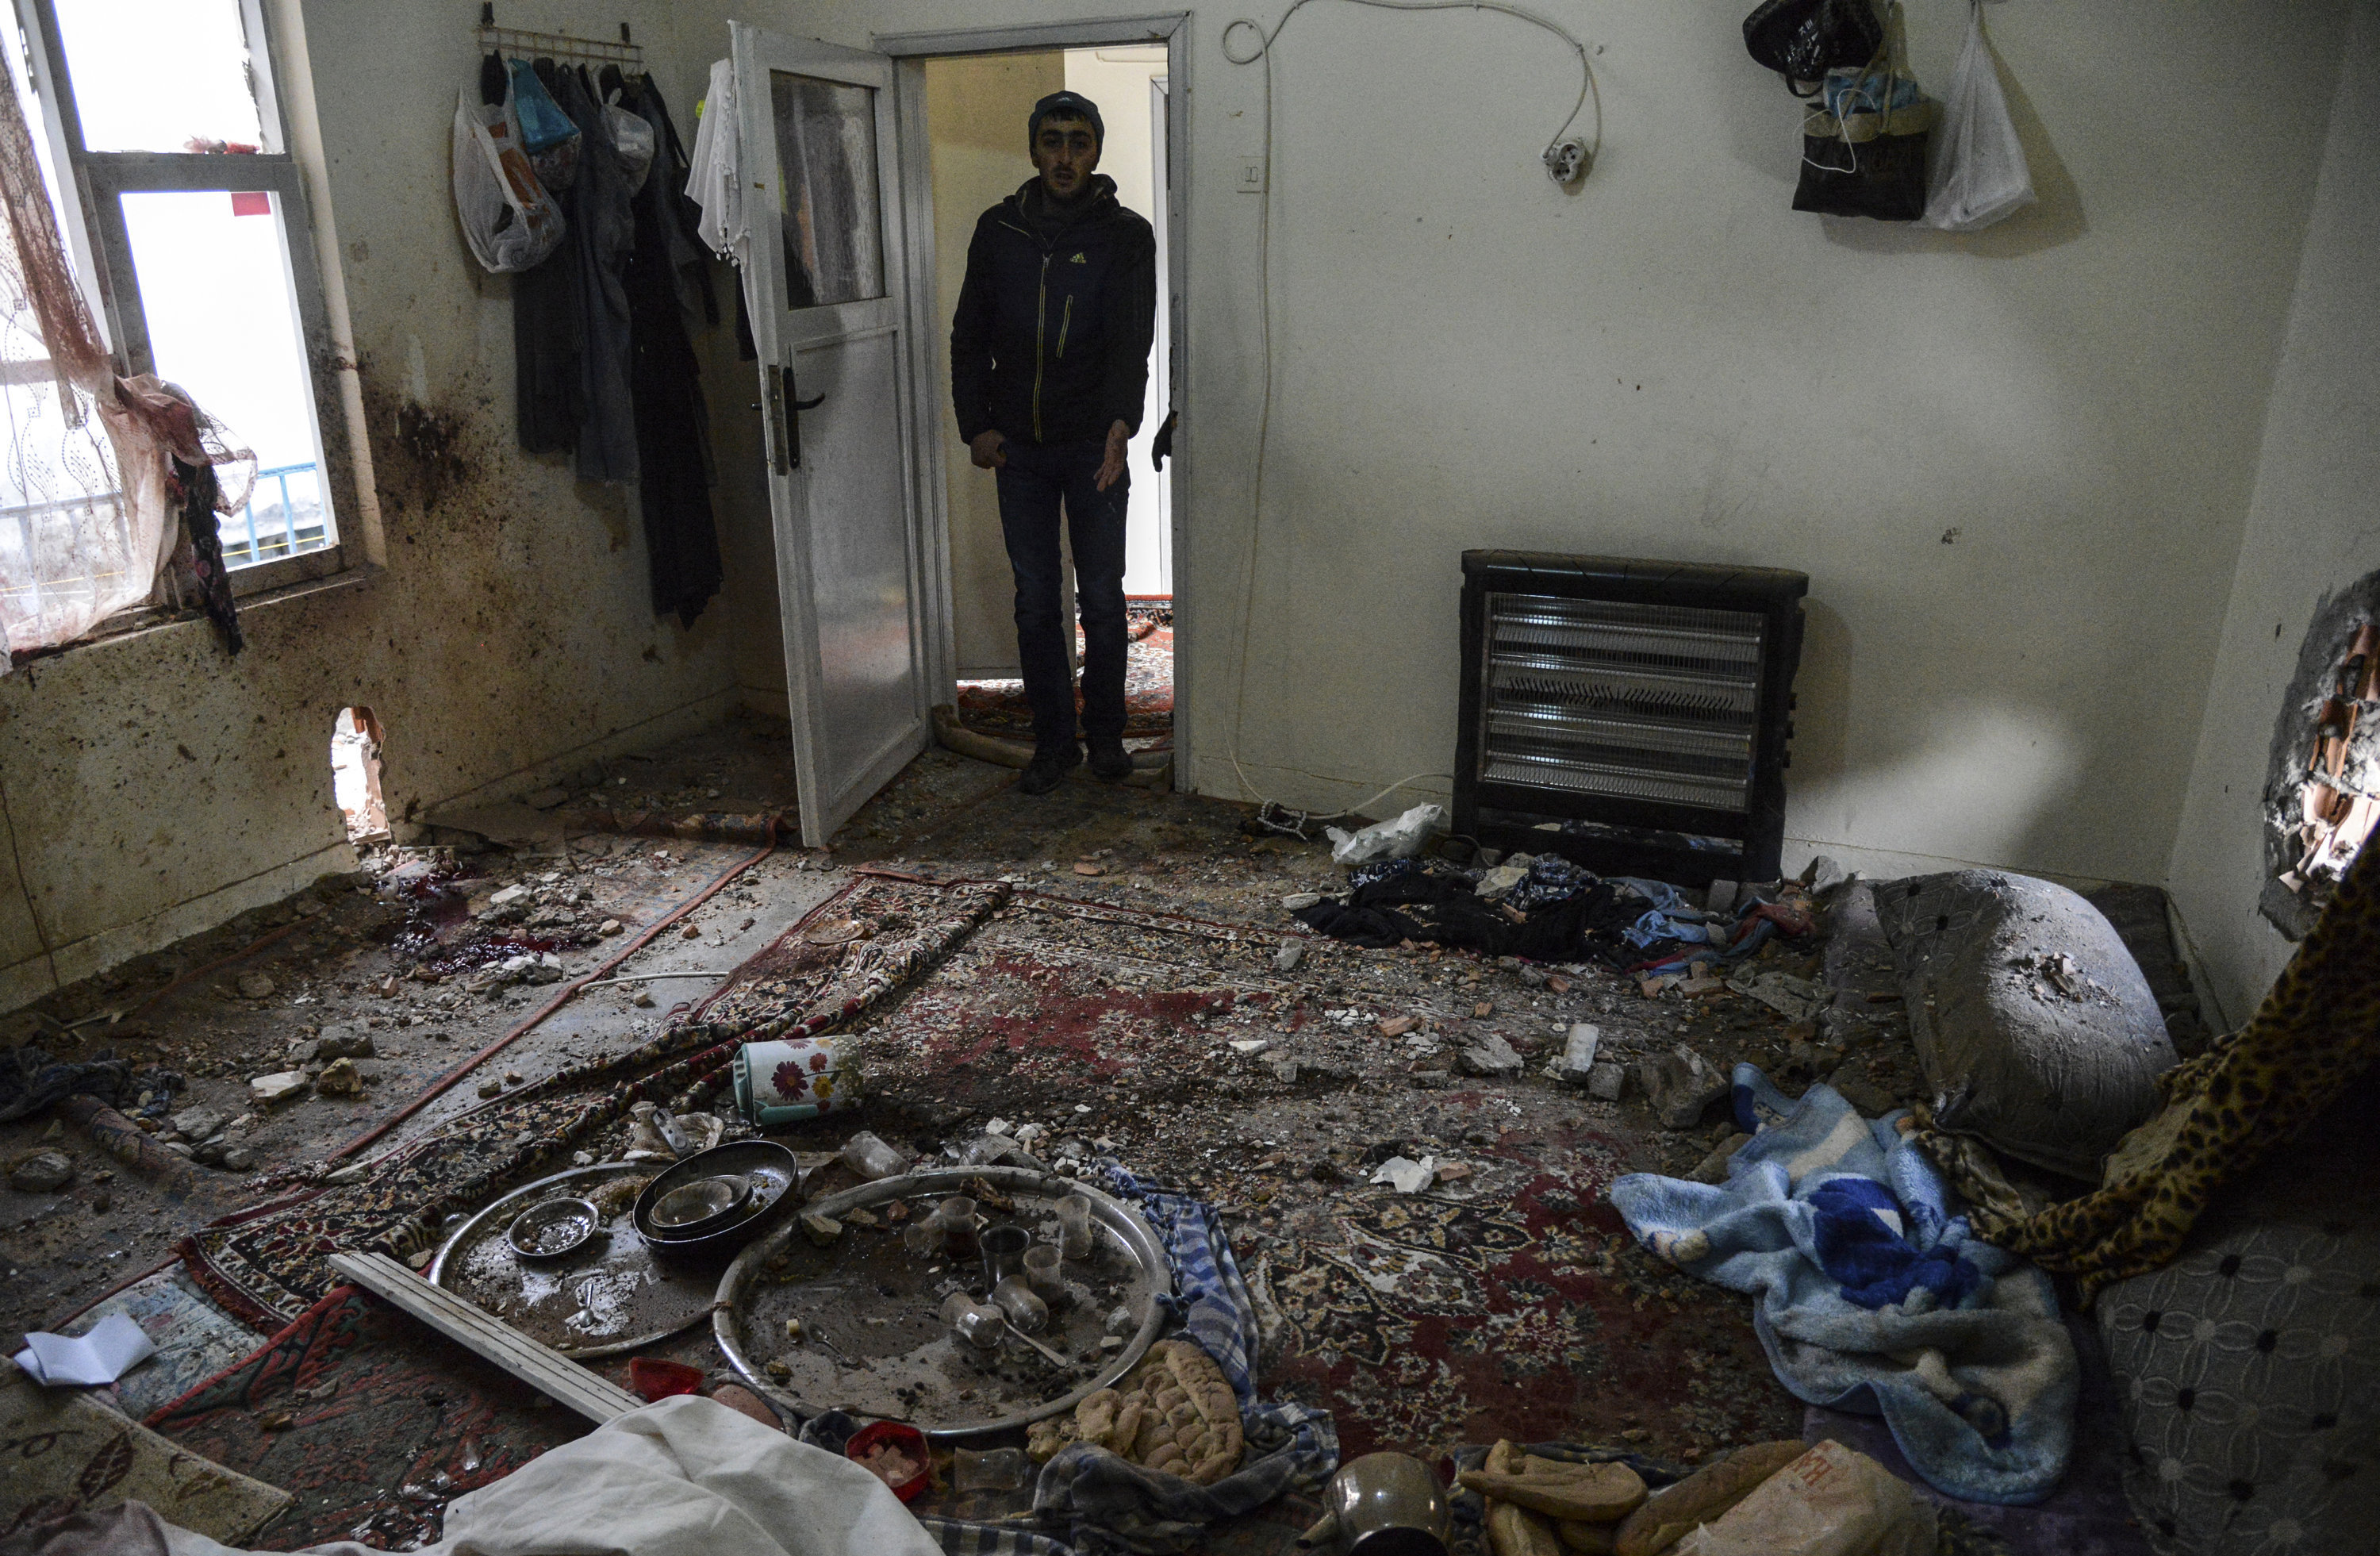 A man stands in the room of a house after it was hit by a mortar during clashes with Turkish police at the Sur district in Diyarbakir, southeastern Turkey, on January 3, 2016